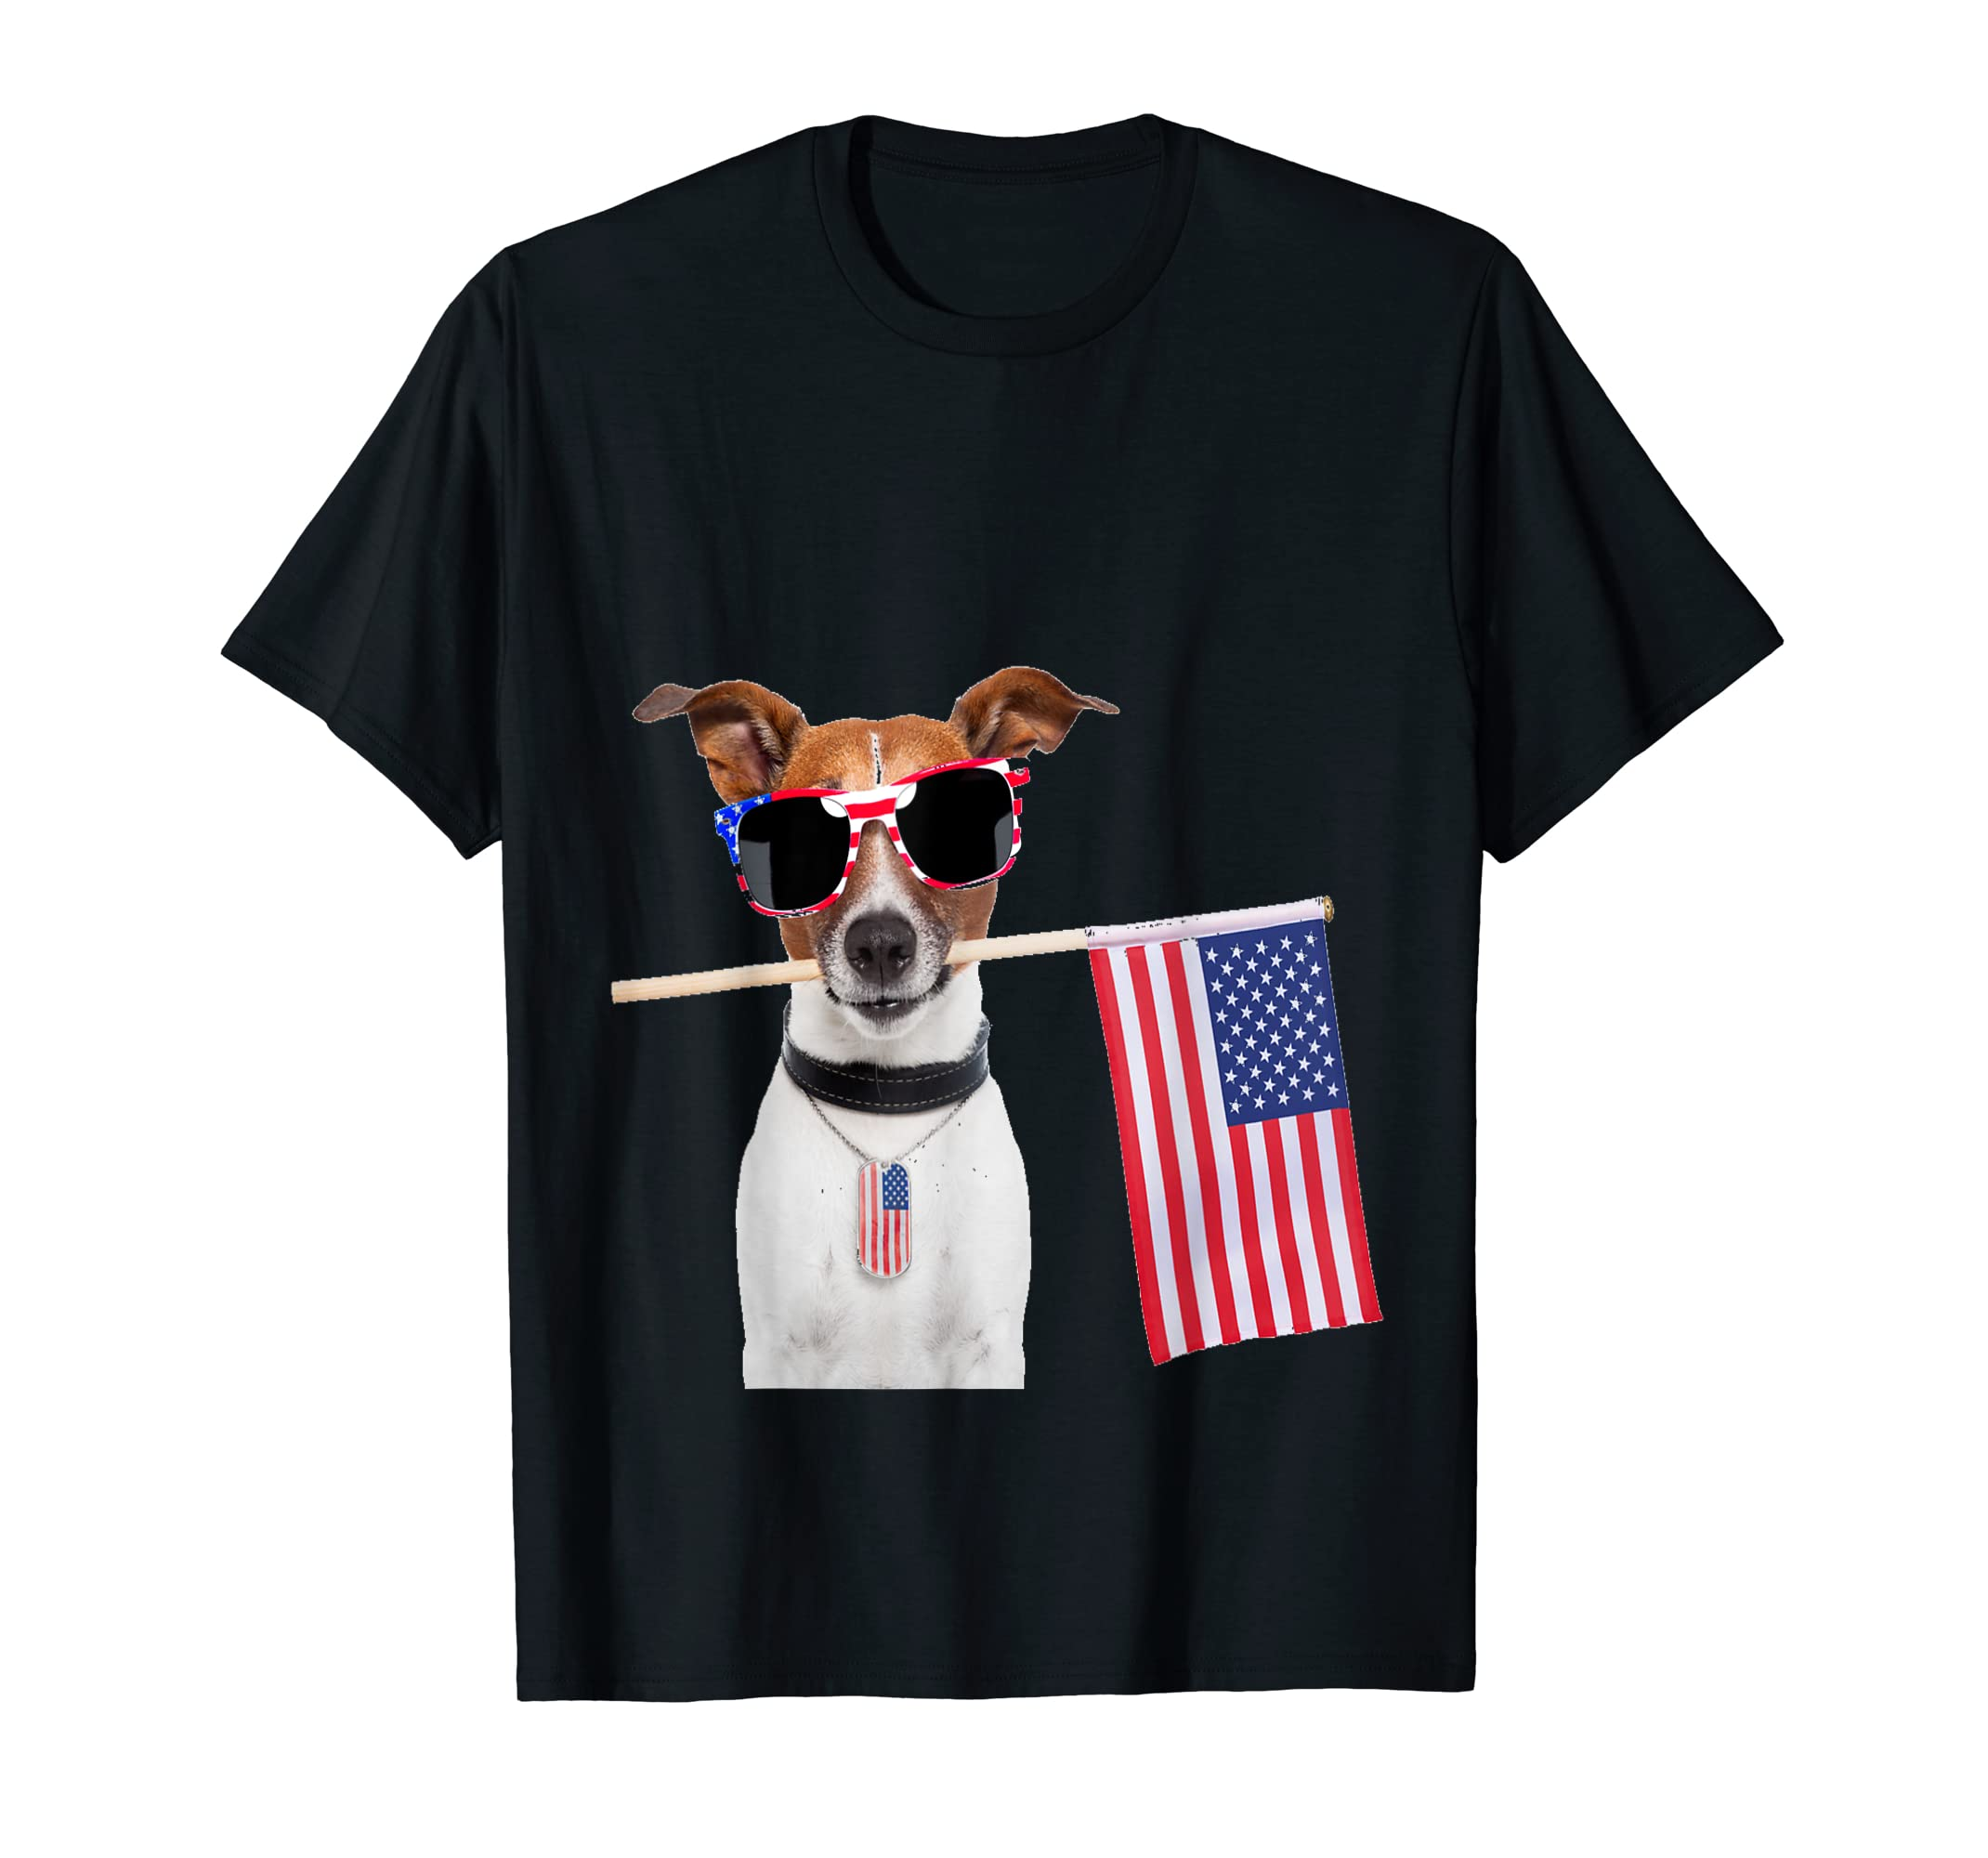 4th of July Shirt American Flag Jack Russel Terrier Dog Tags-Men's T-Shirt-Black